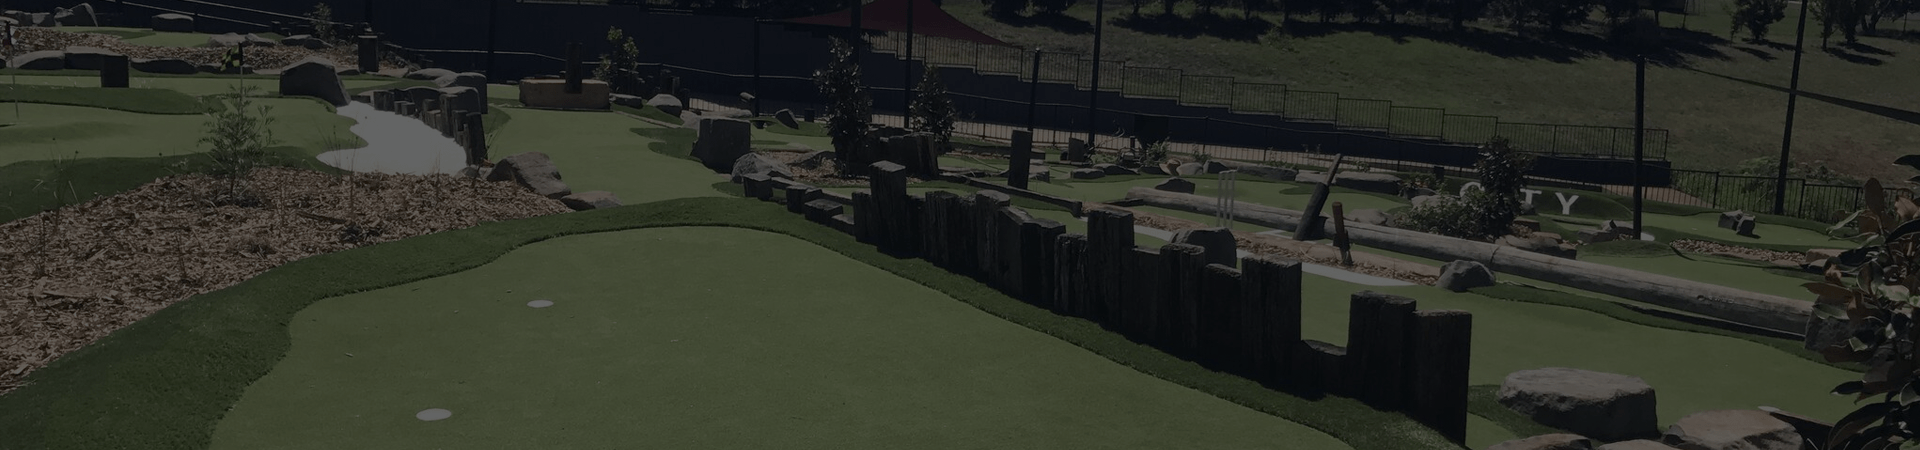 Mini Golf Course Design, Miniature Golf Design - Australia & SE Asia